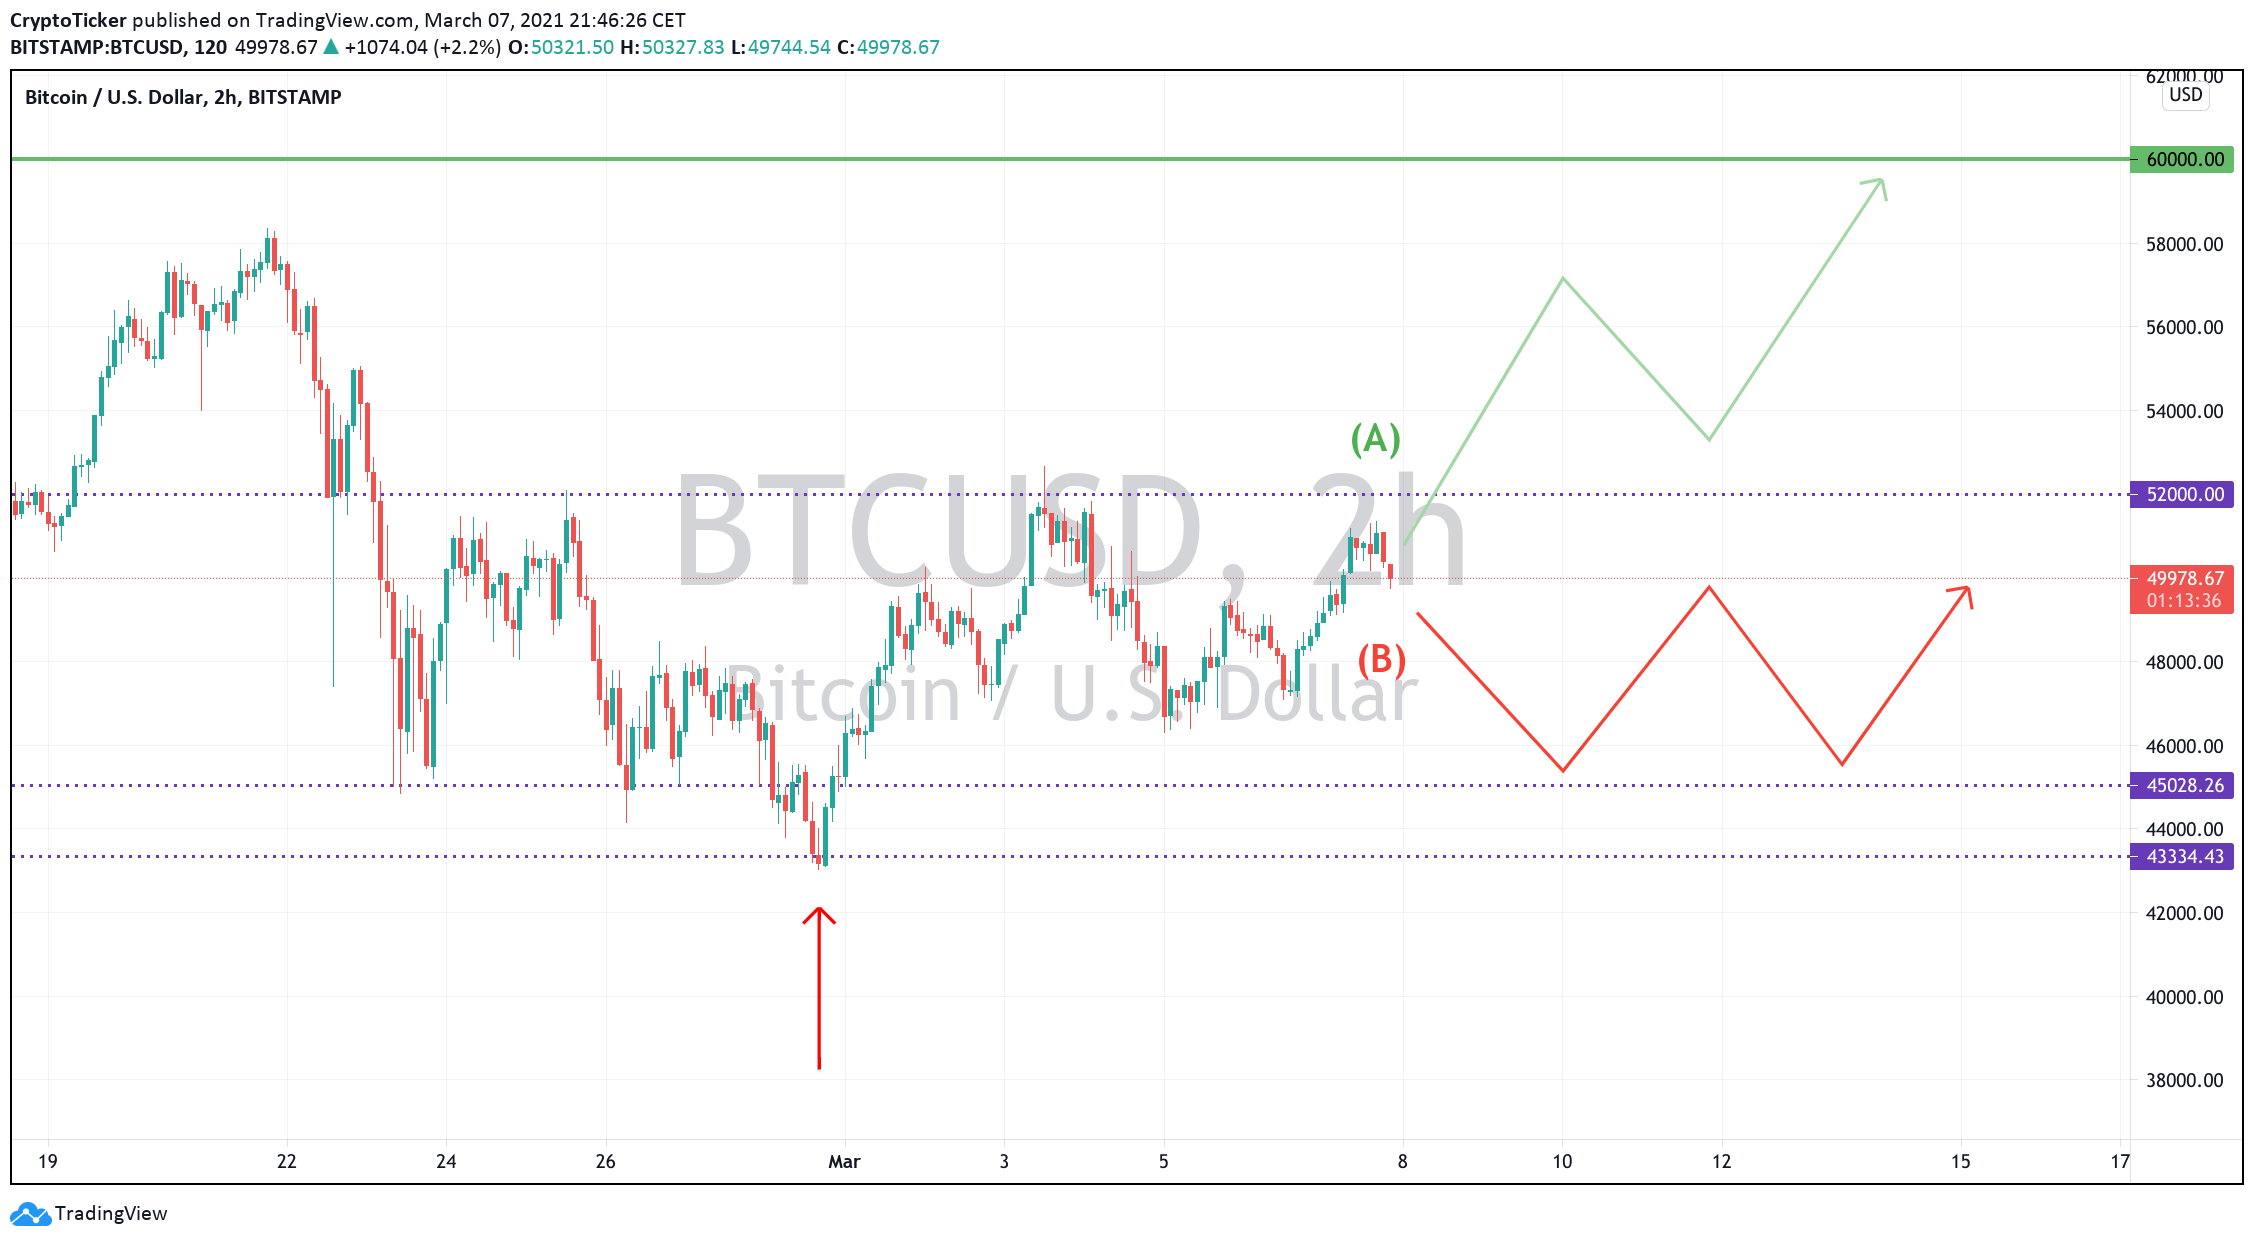 BTC/USD 2-hour chart showing the potential scenarios